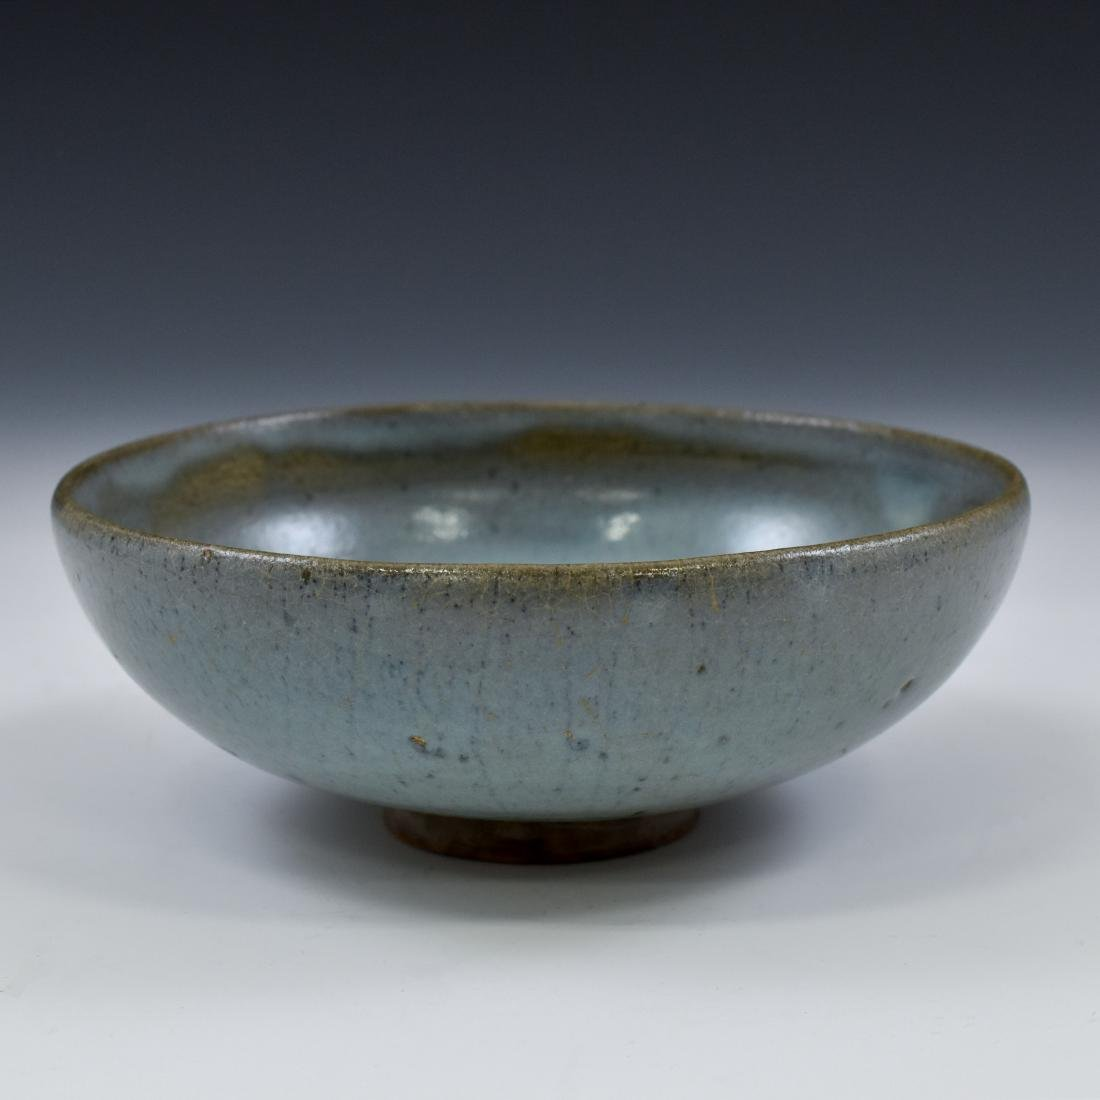 YUAN DYNASTY JUN WARE TEA BOWL - 7